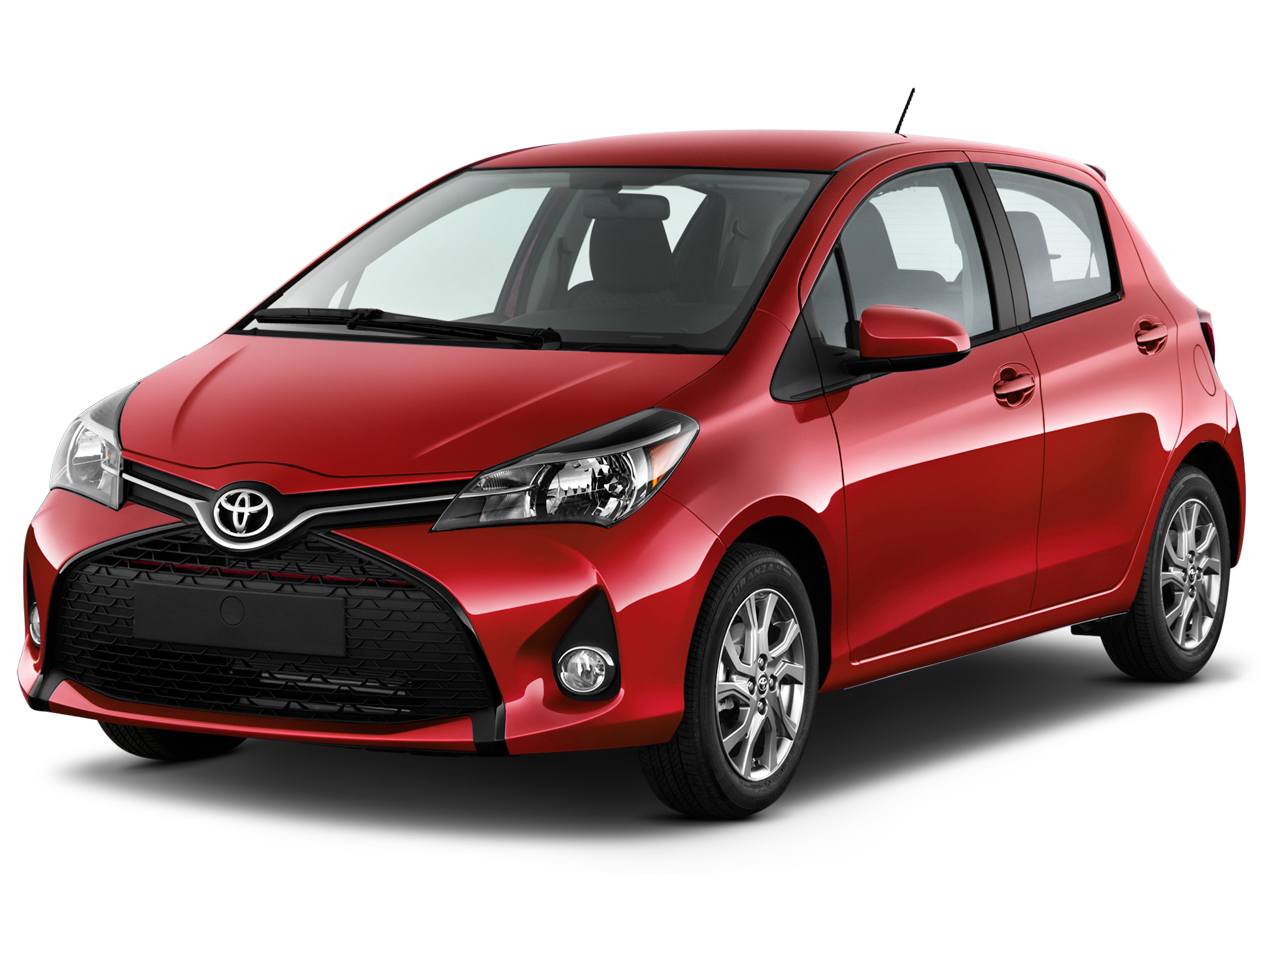 2017 toyota yaris review ratings specs prices and. Black Bedroom Furniture Sets. Home Design Ideas